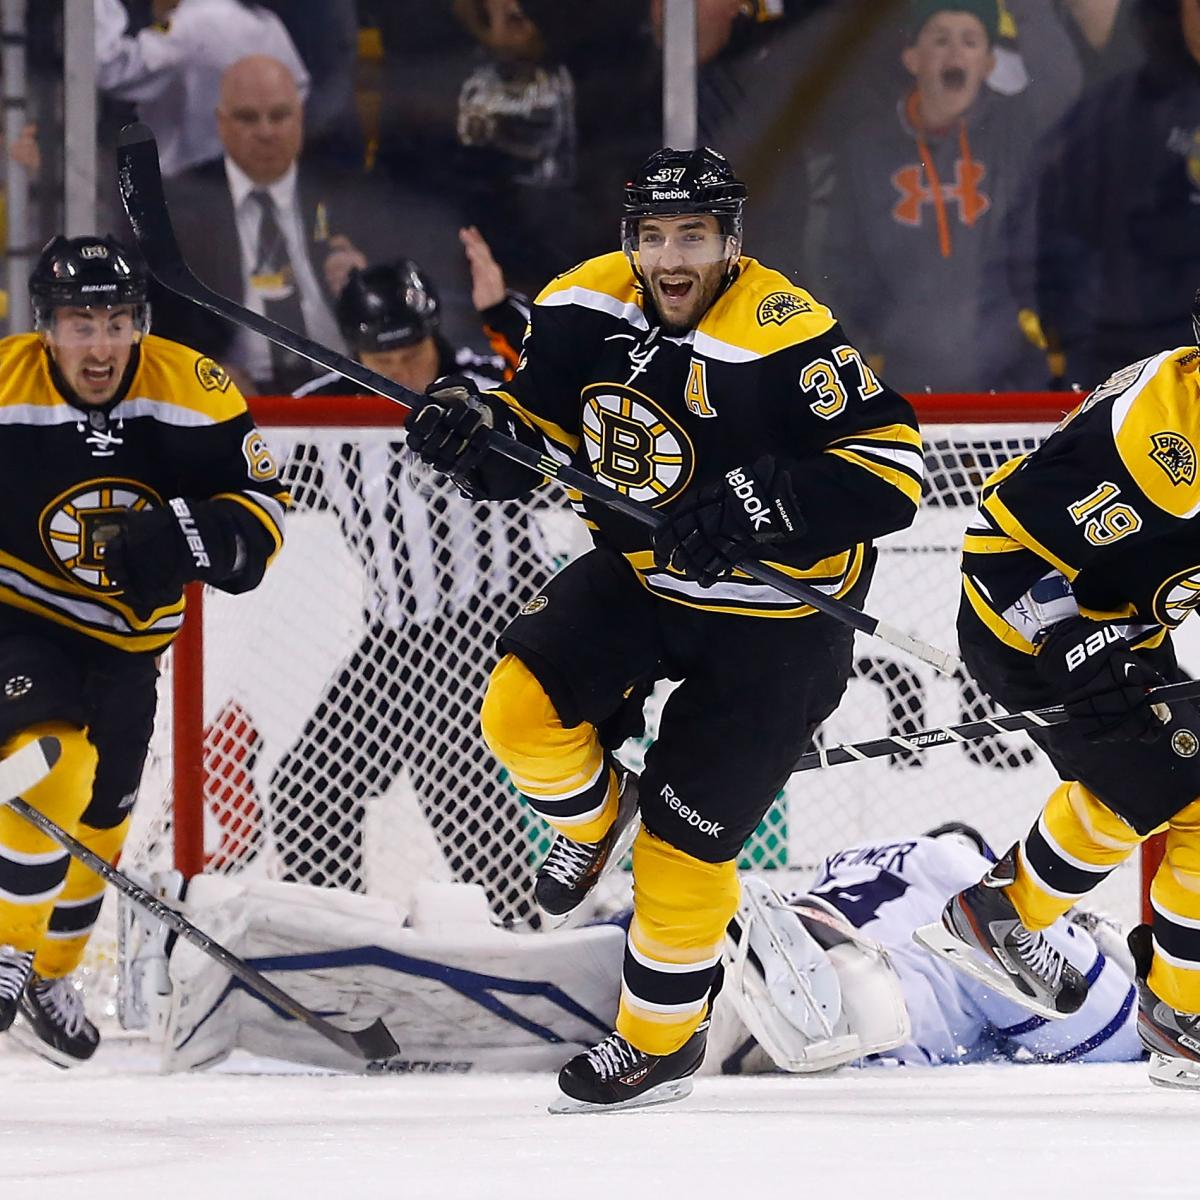 Will Rangers Vs. Bruins Playoff Series Live Up To